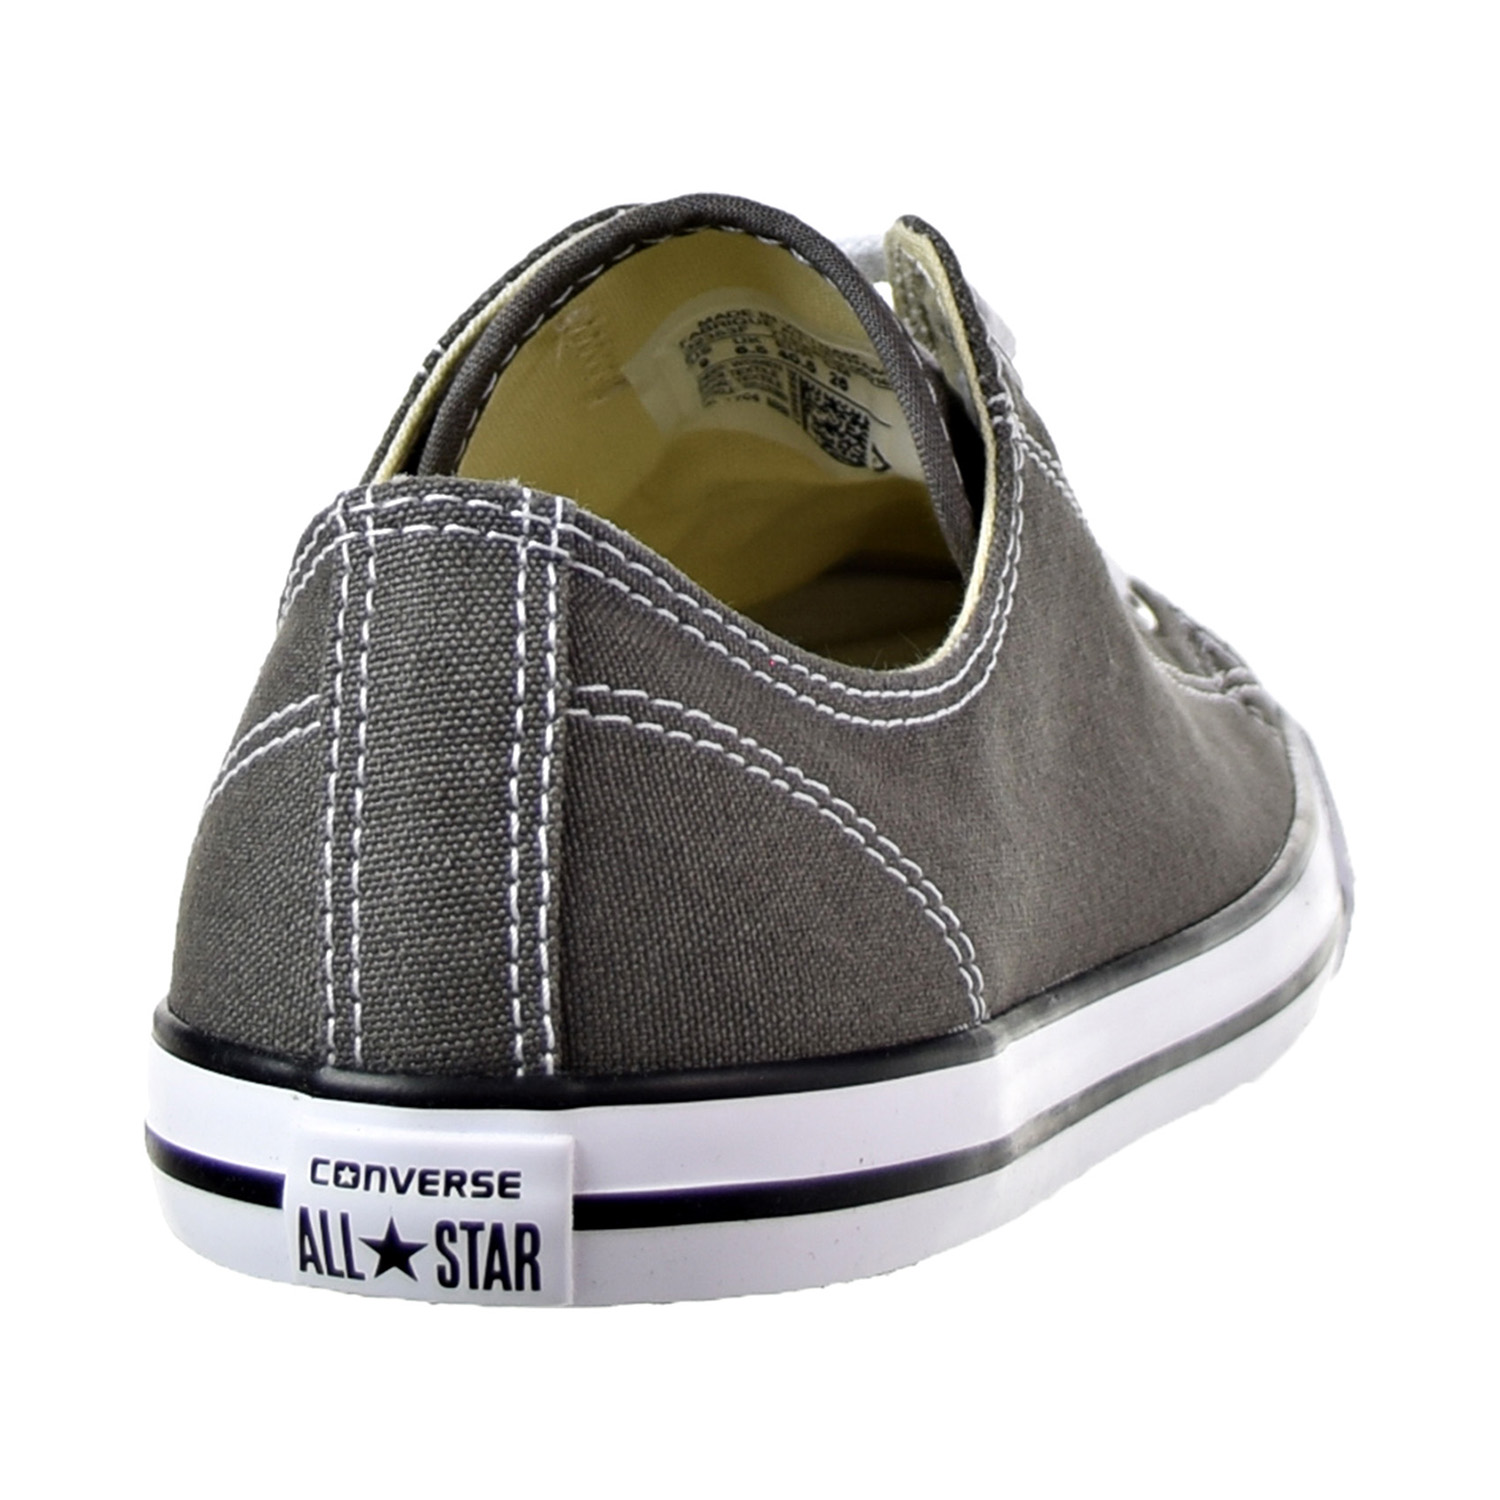 CHUCK TAYLOR ALL STAR DAINTY LOW TOP WOMEN FASHION SNEAKERS BRAND NEW 532353F